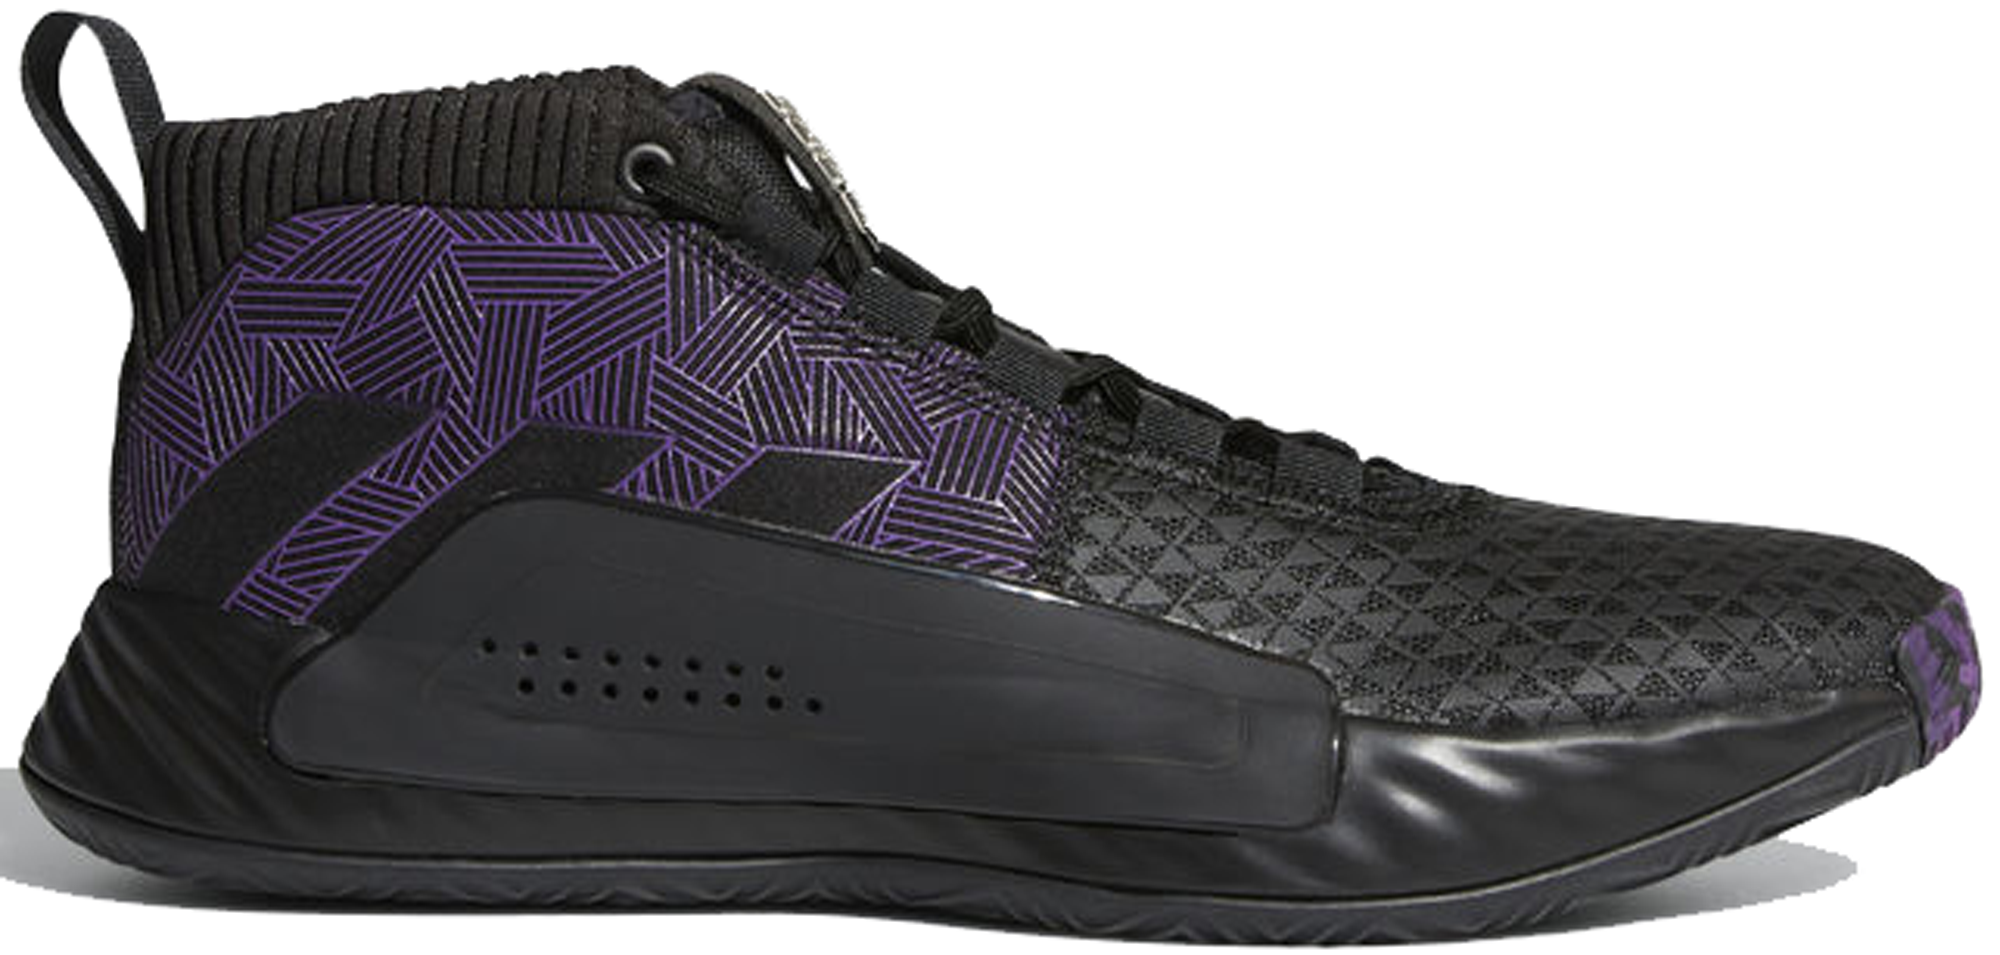 adidas Dame 5 Marvel Black Panther